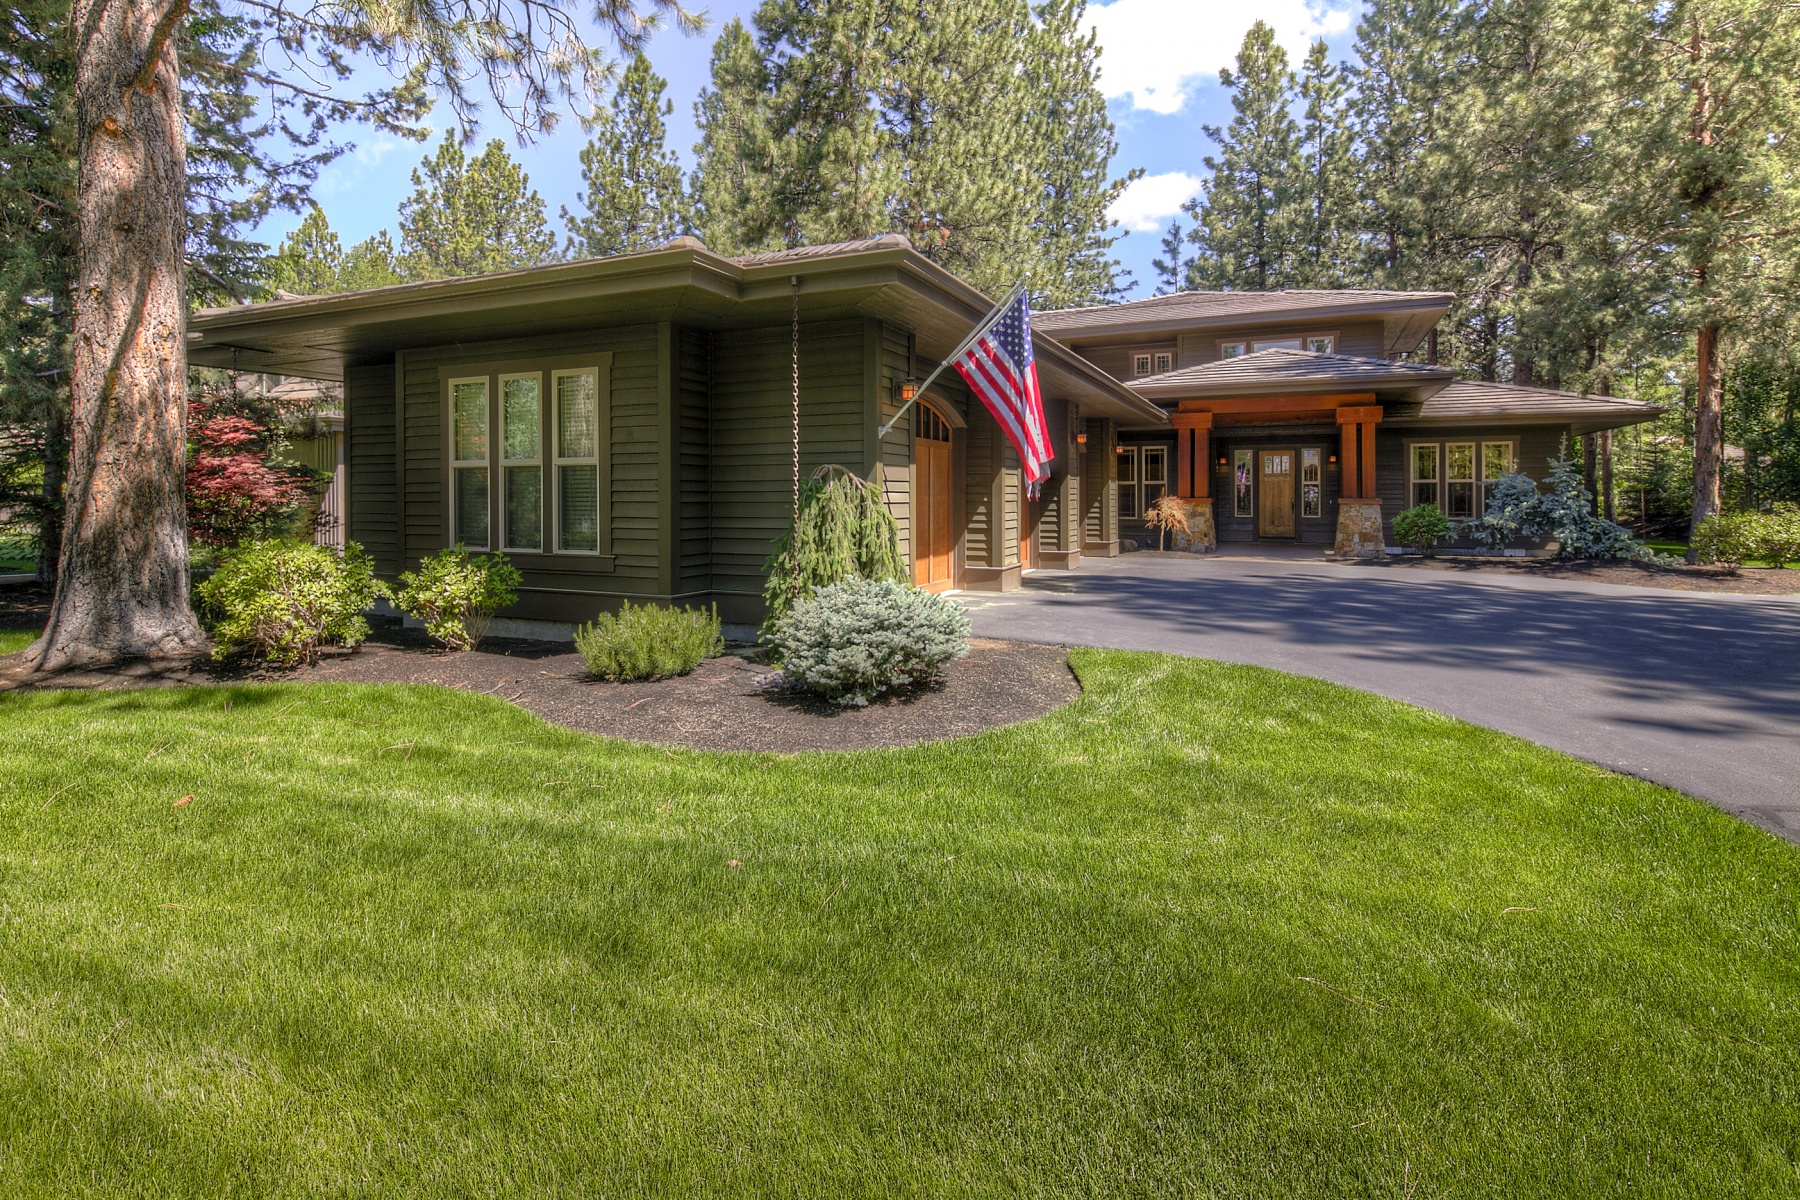 Single Family Home for Sale at Broken Top 19356 Soda Springs Dr Bend, Oregon 97702 United States